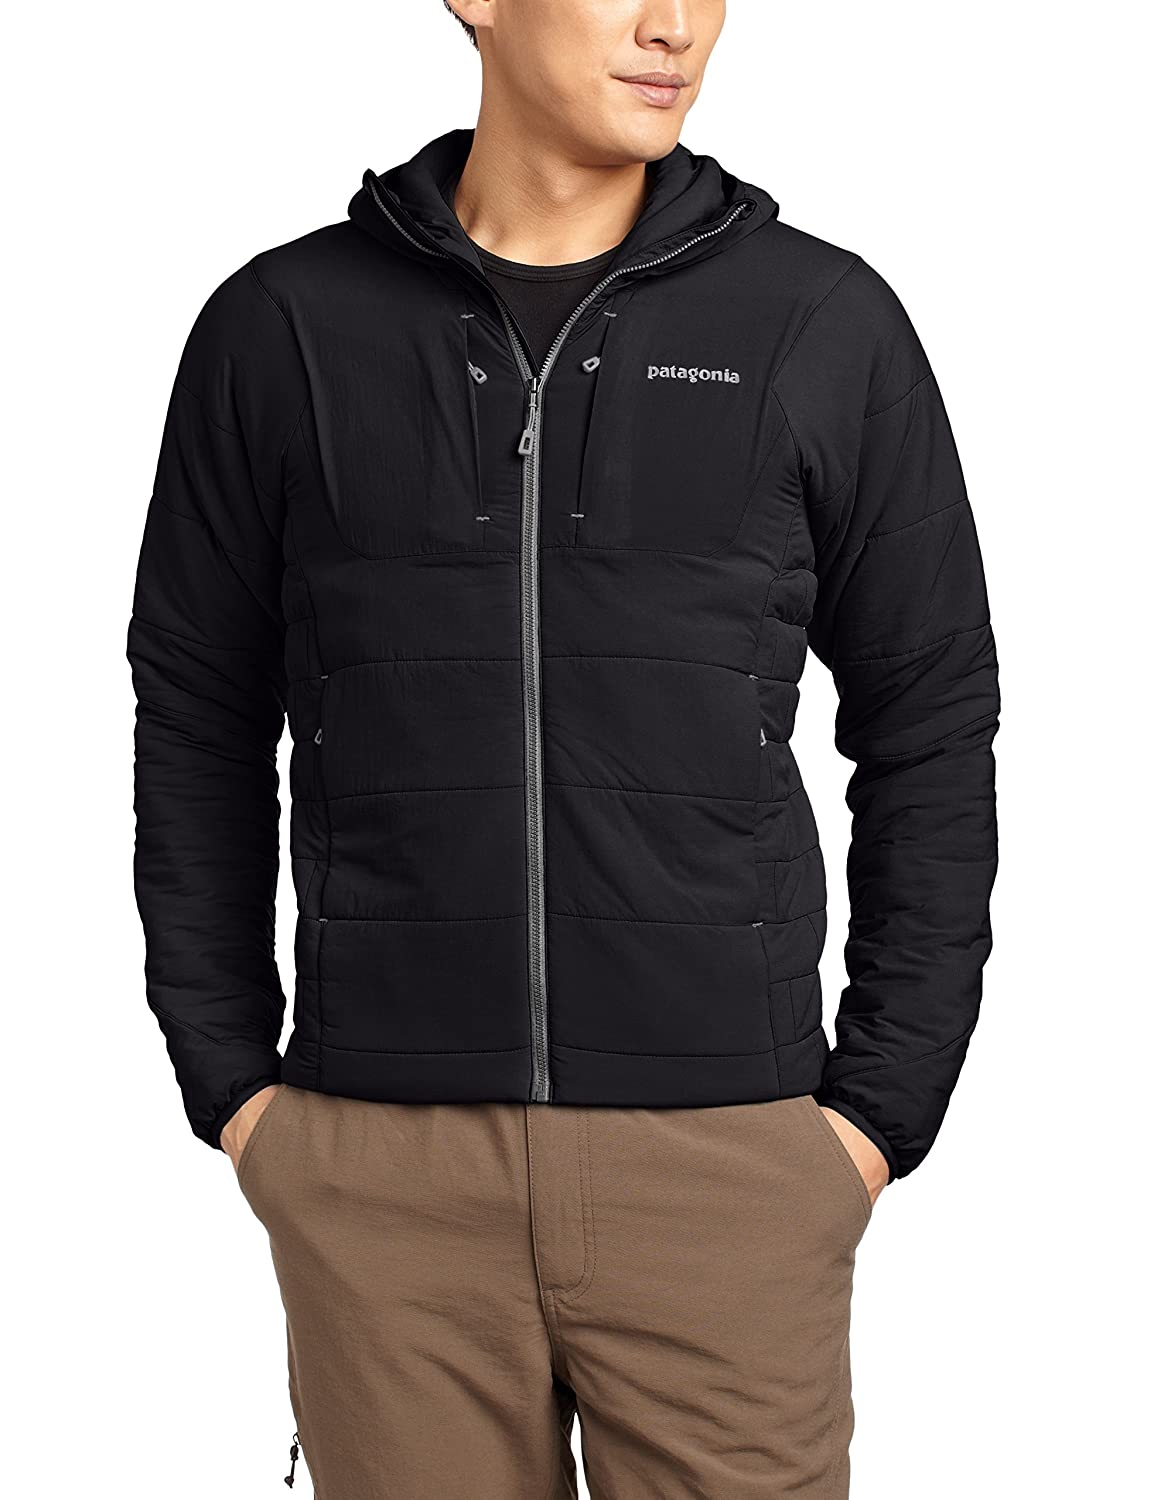 Patagonia Nano-Air Hooded Jacket - Black